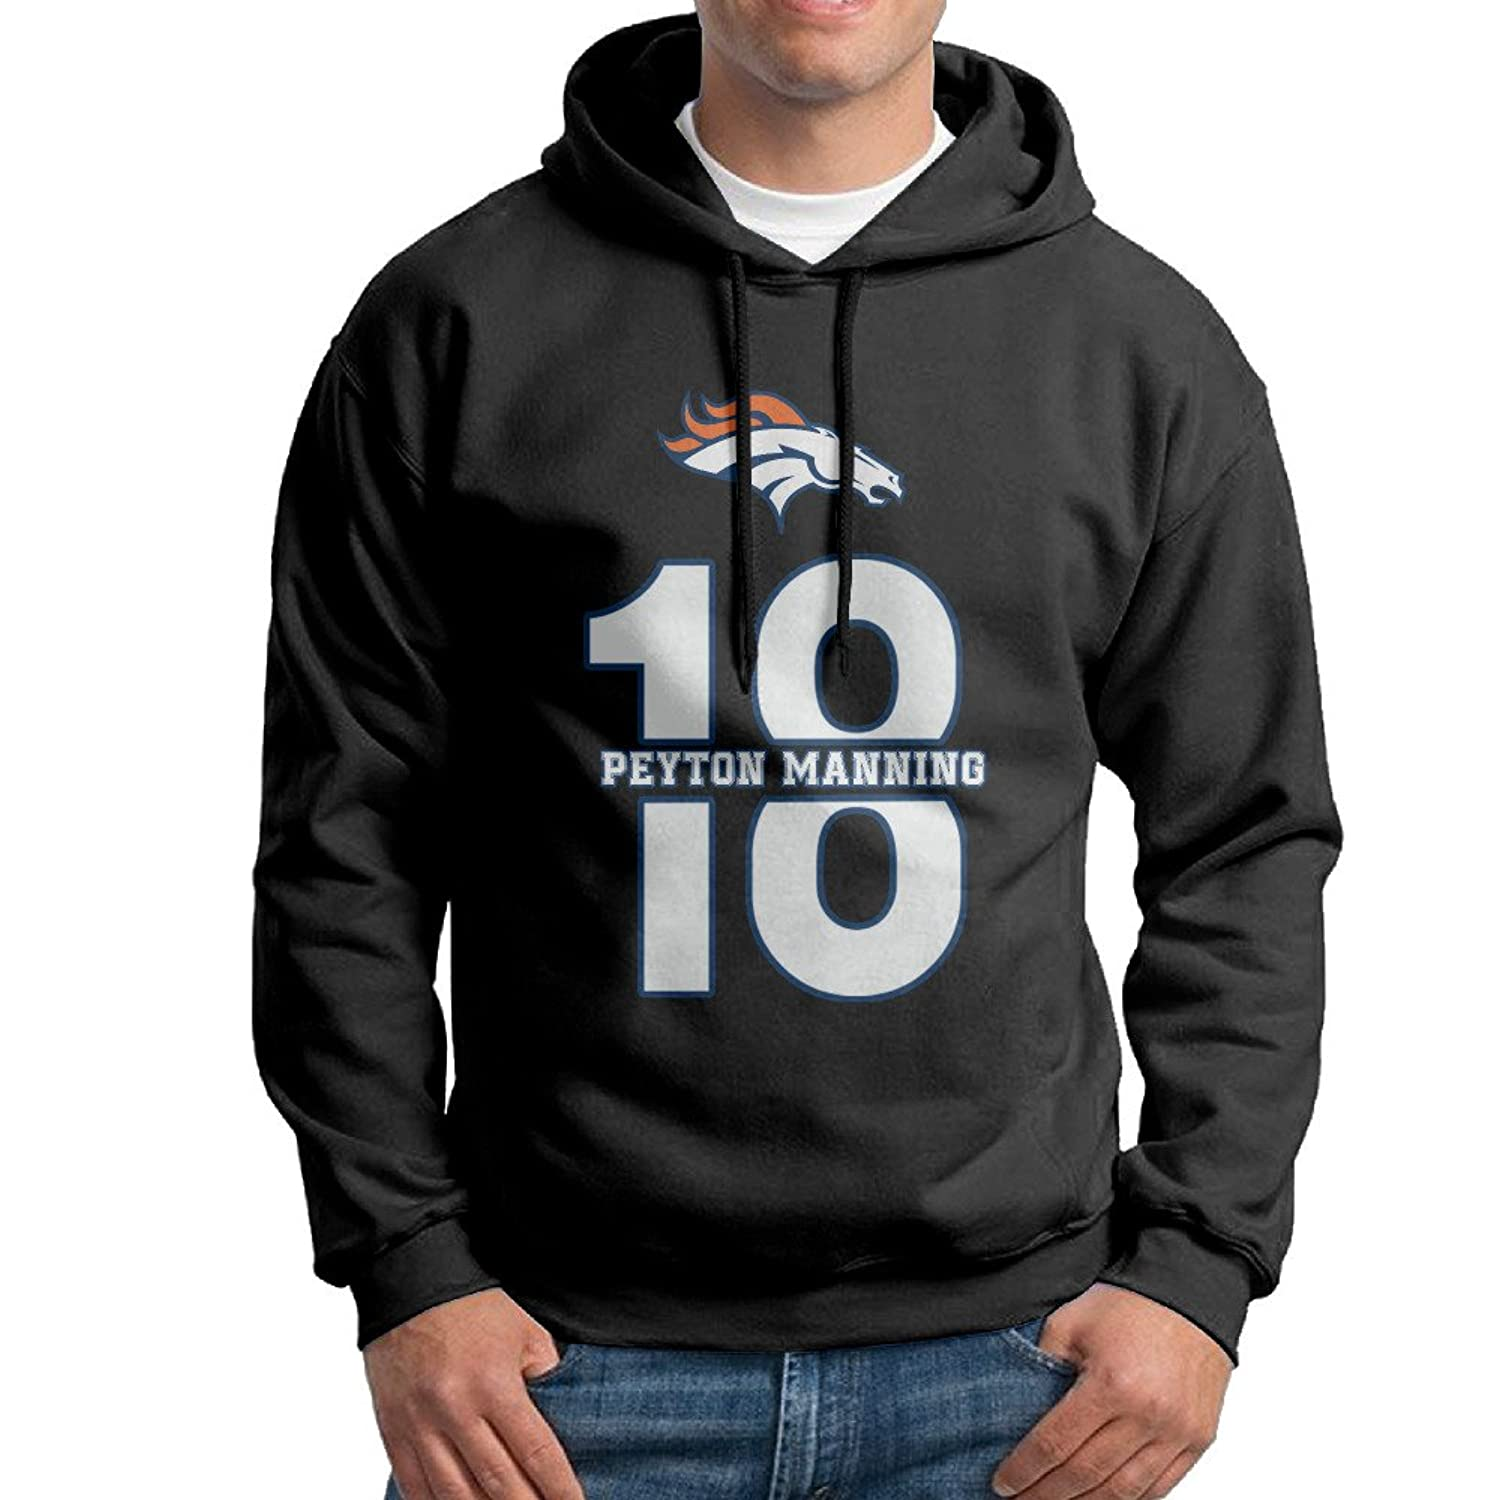 various colors 83a3e 98645 SuperFF Men's Peyton Manning Hooded Sweatshirt 60%OFF ...